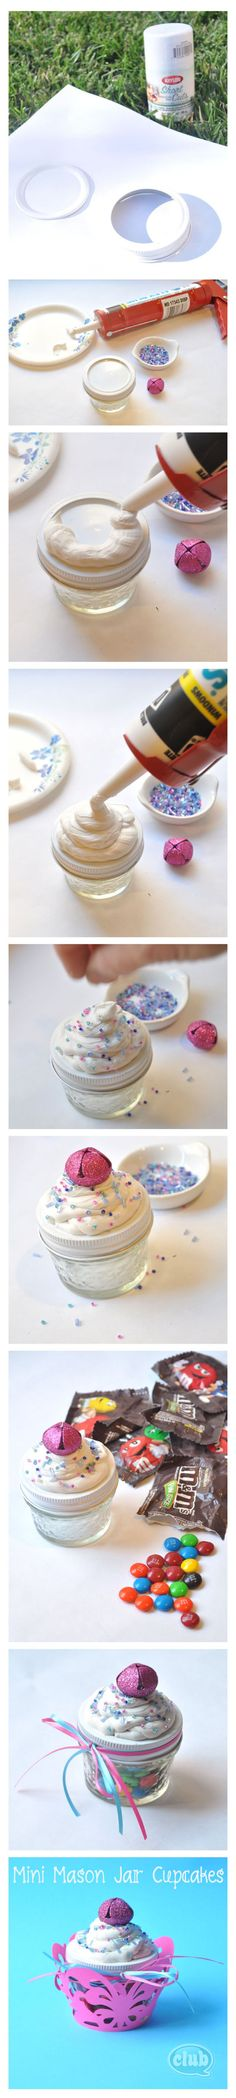 Mini Mason jar cupcakes!  So adorable!  #diy #tutorial